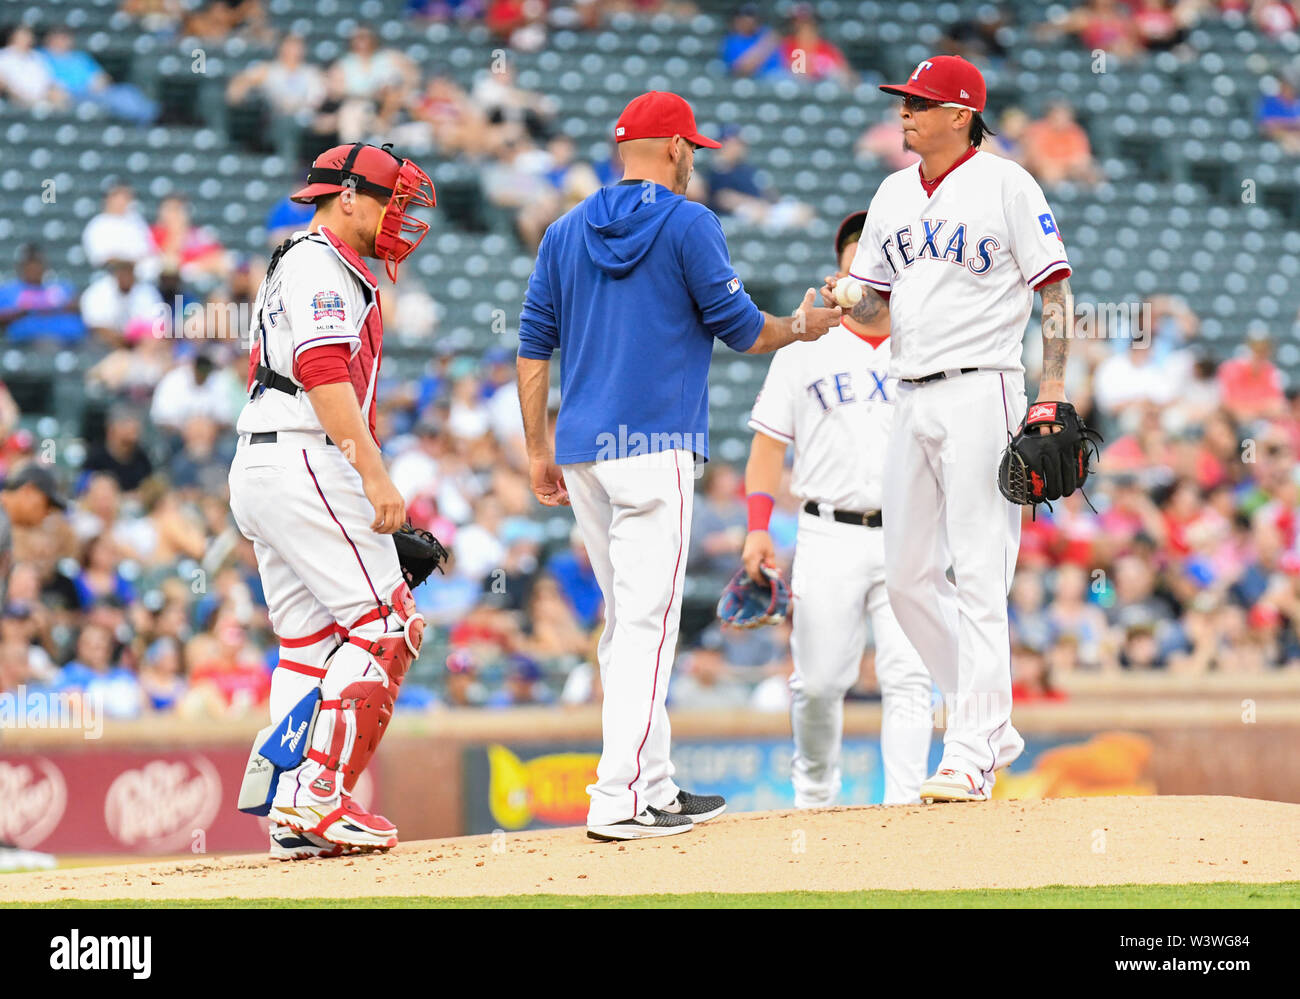 Arizona, USA. 17th July 2019. Texas Rangers relief pitcher Jesse Chavez #53 is pulled from the game in the first inning after giving up 7 earned runs during an interleague MLB game between the National League team the Arizona Diamondbacks and the Texas Rangers at Globe Life Park in Arlington, Arizona defeated Texas 19-4 Albert Pena/CSM Credit: Cal Sport Media/Alamy Live News - Stock Image